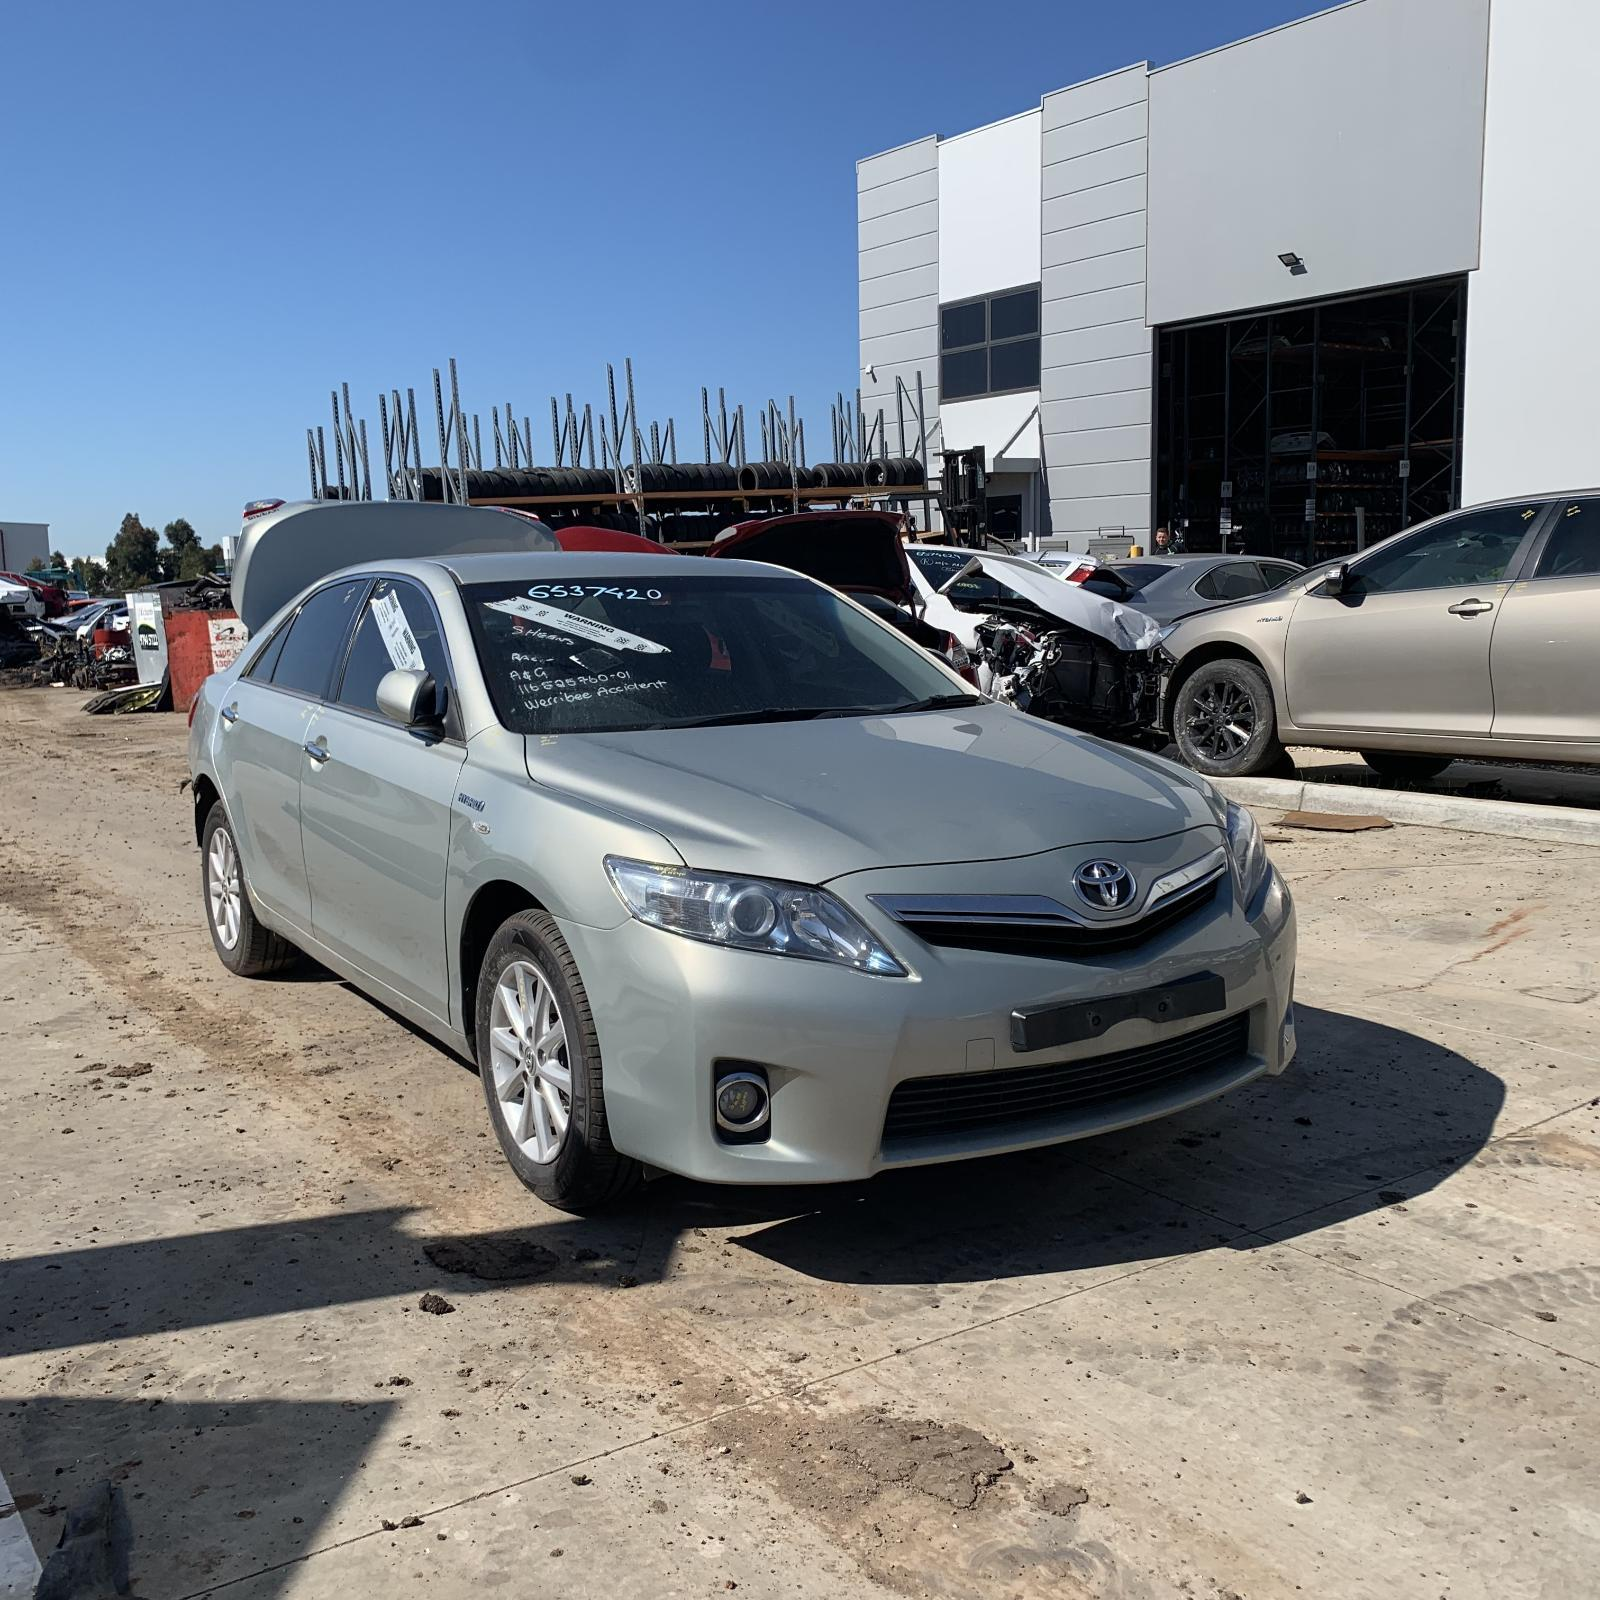 Toyota CAMRY AHV40R 2AZ-FXE 2.4L Engine Automatic FWD Transmission 06/06 - 11/11